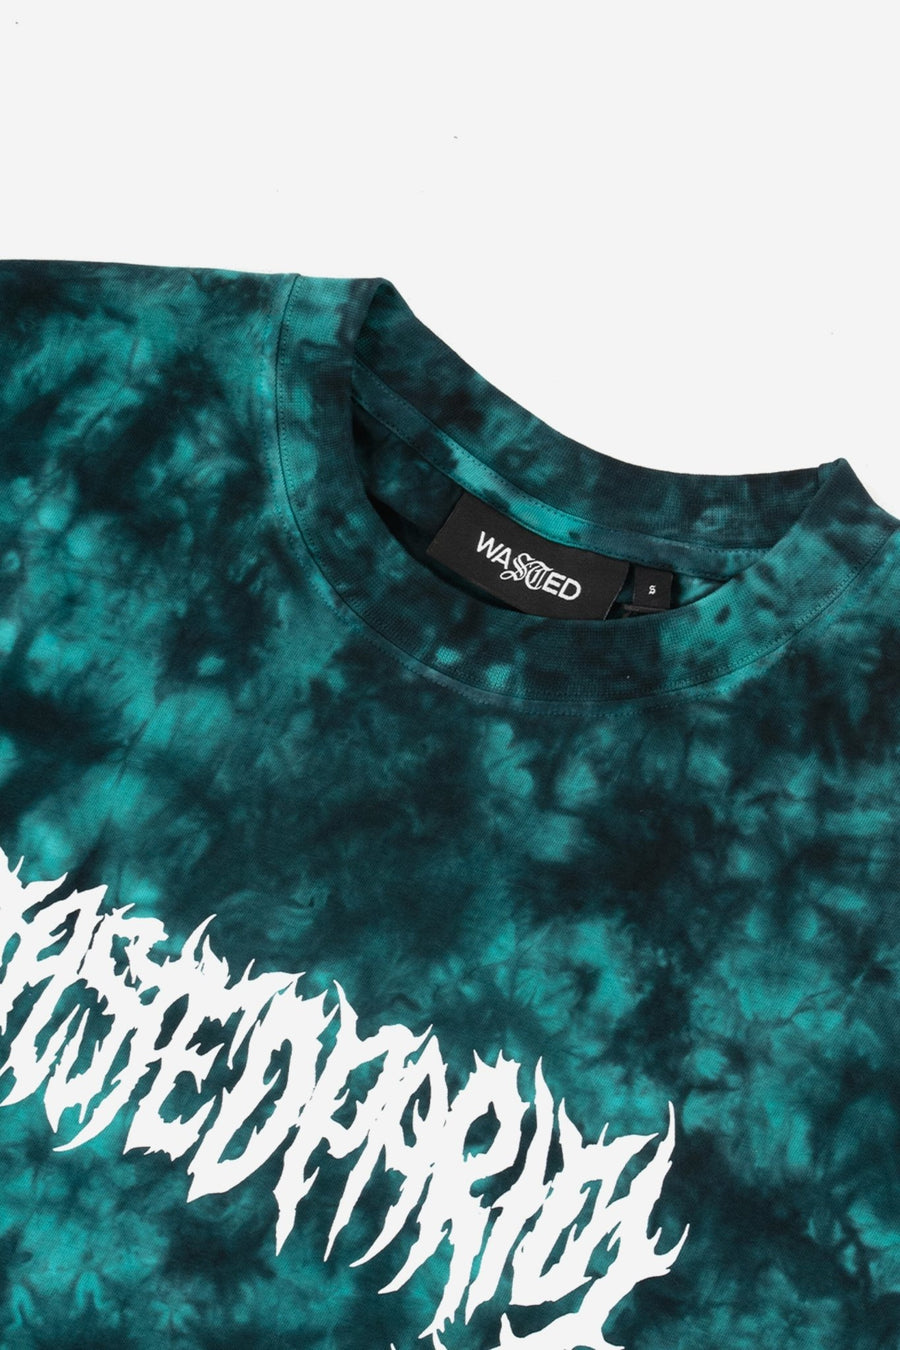 T-shirt Marble Die Nebula Noir/Vert - WASTED PARIS